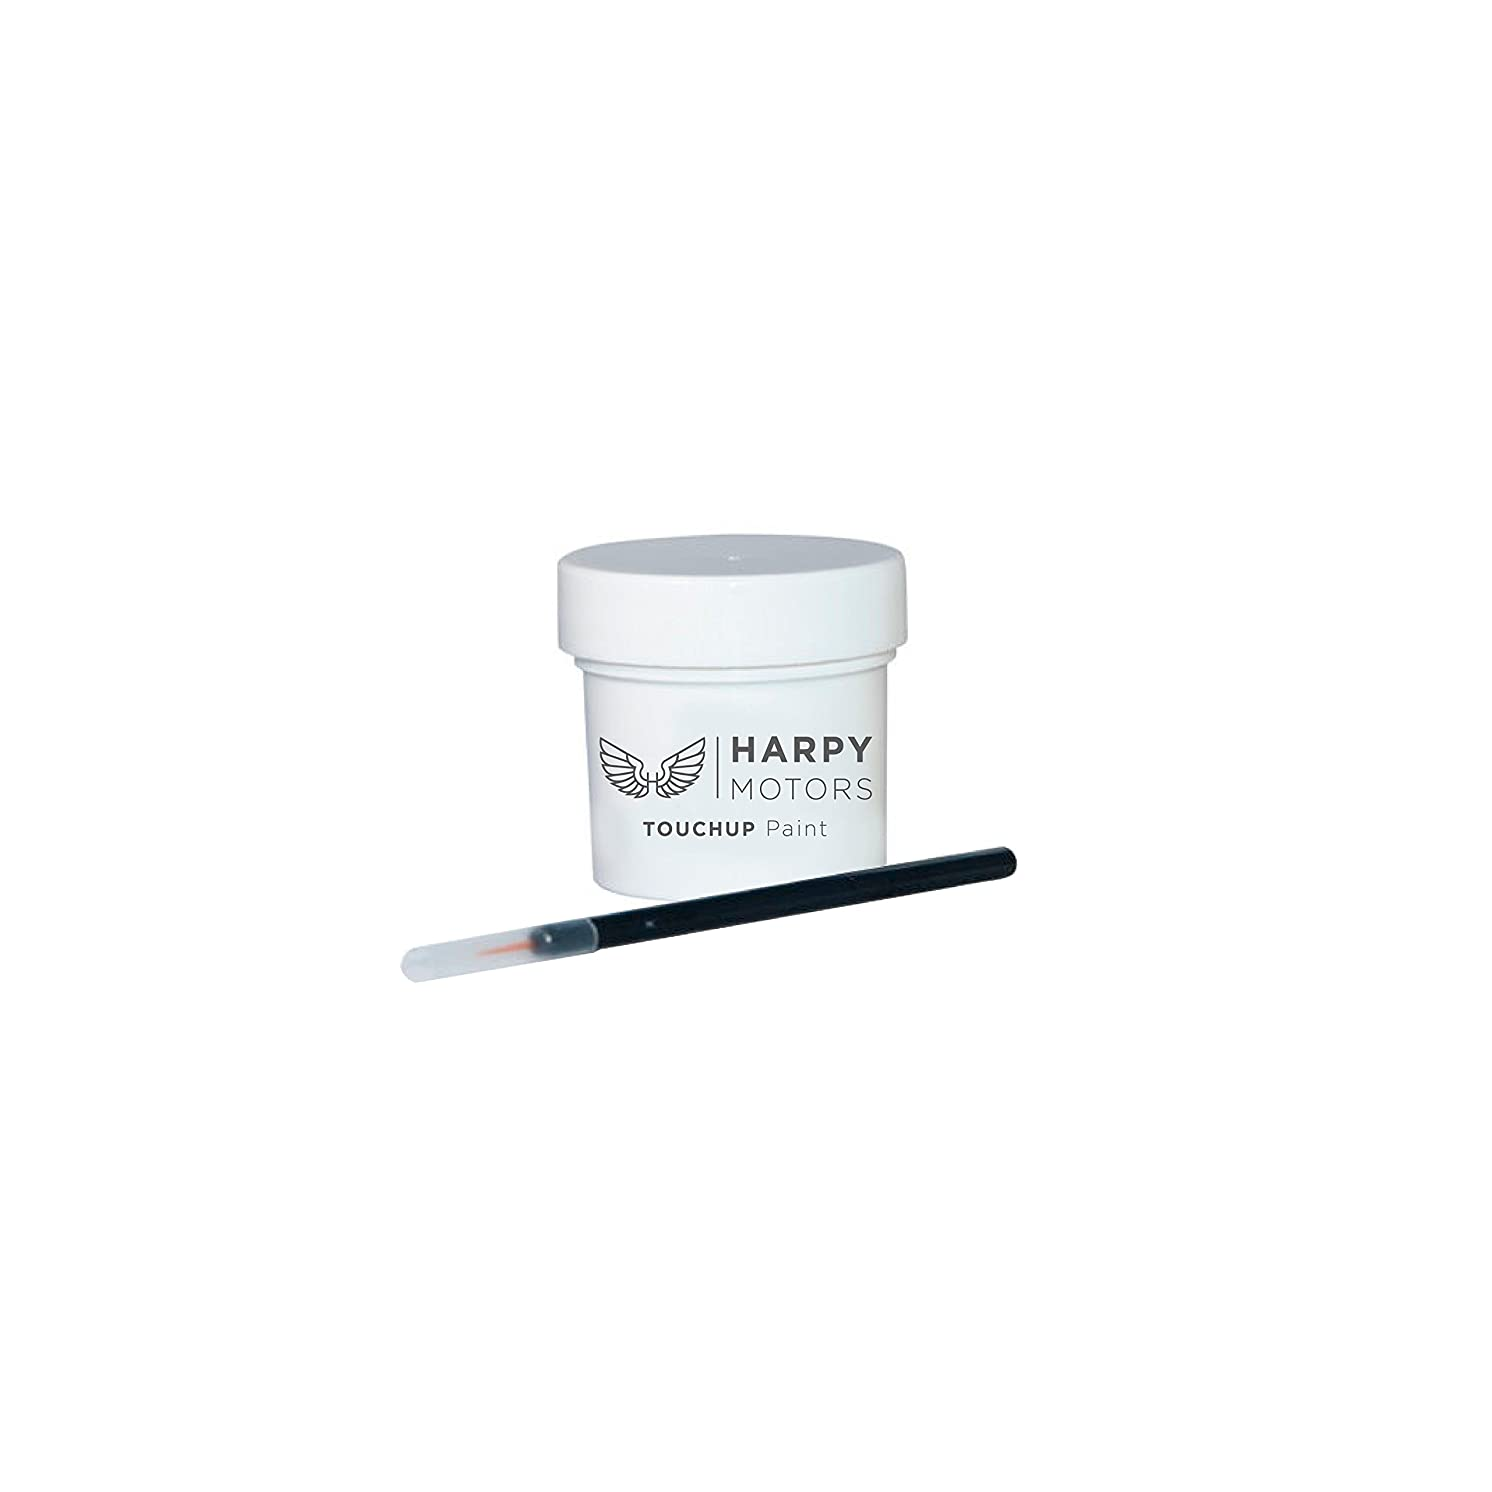 Harpy Motors 2015-2018 Lexus NX 85 Eminent White Pearl 1oz Professional Touch up Paint with Brush -Color Match Guaranteed